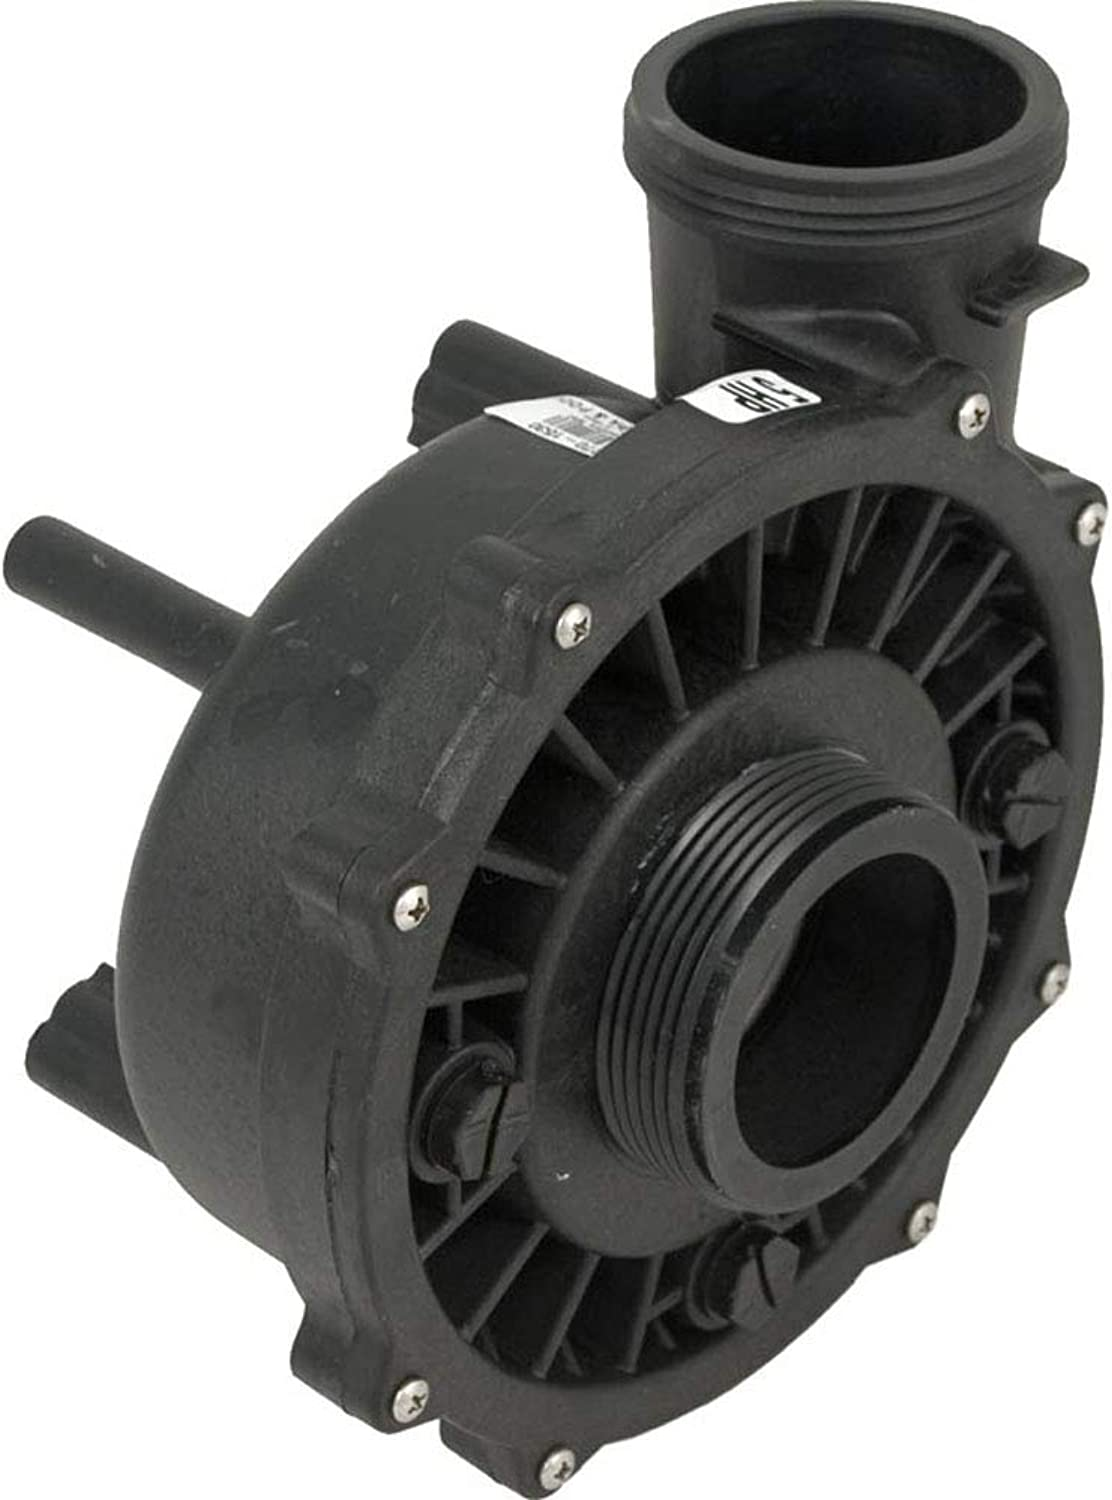 Waterway Executive Wet End 48 Frame 2 x2  5.0Hp 310-1930